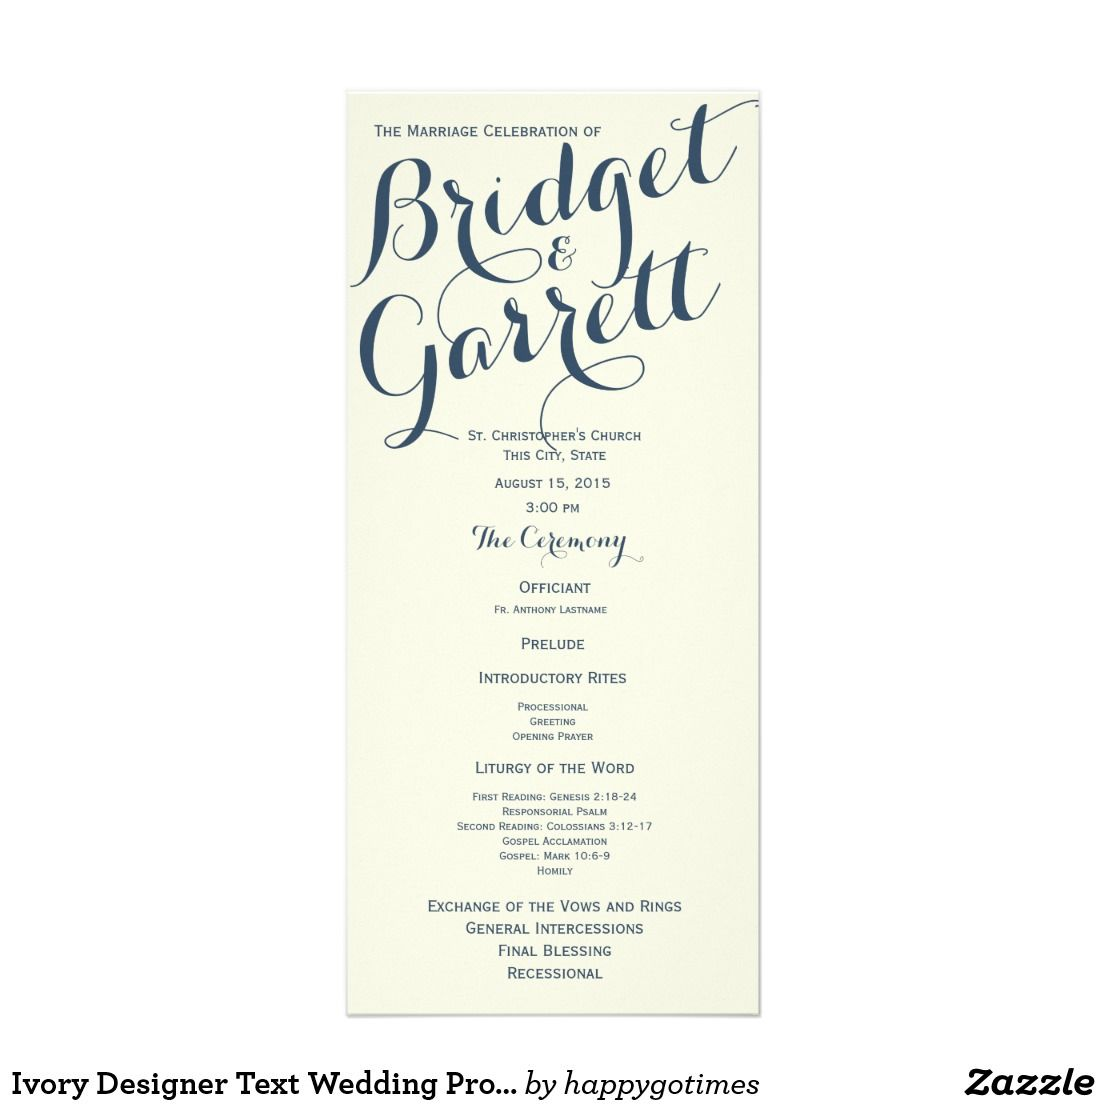 ivory designer text wedding program wedding programs pinterest